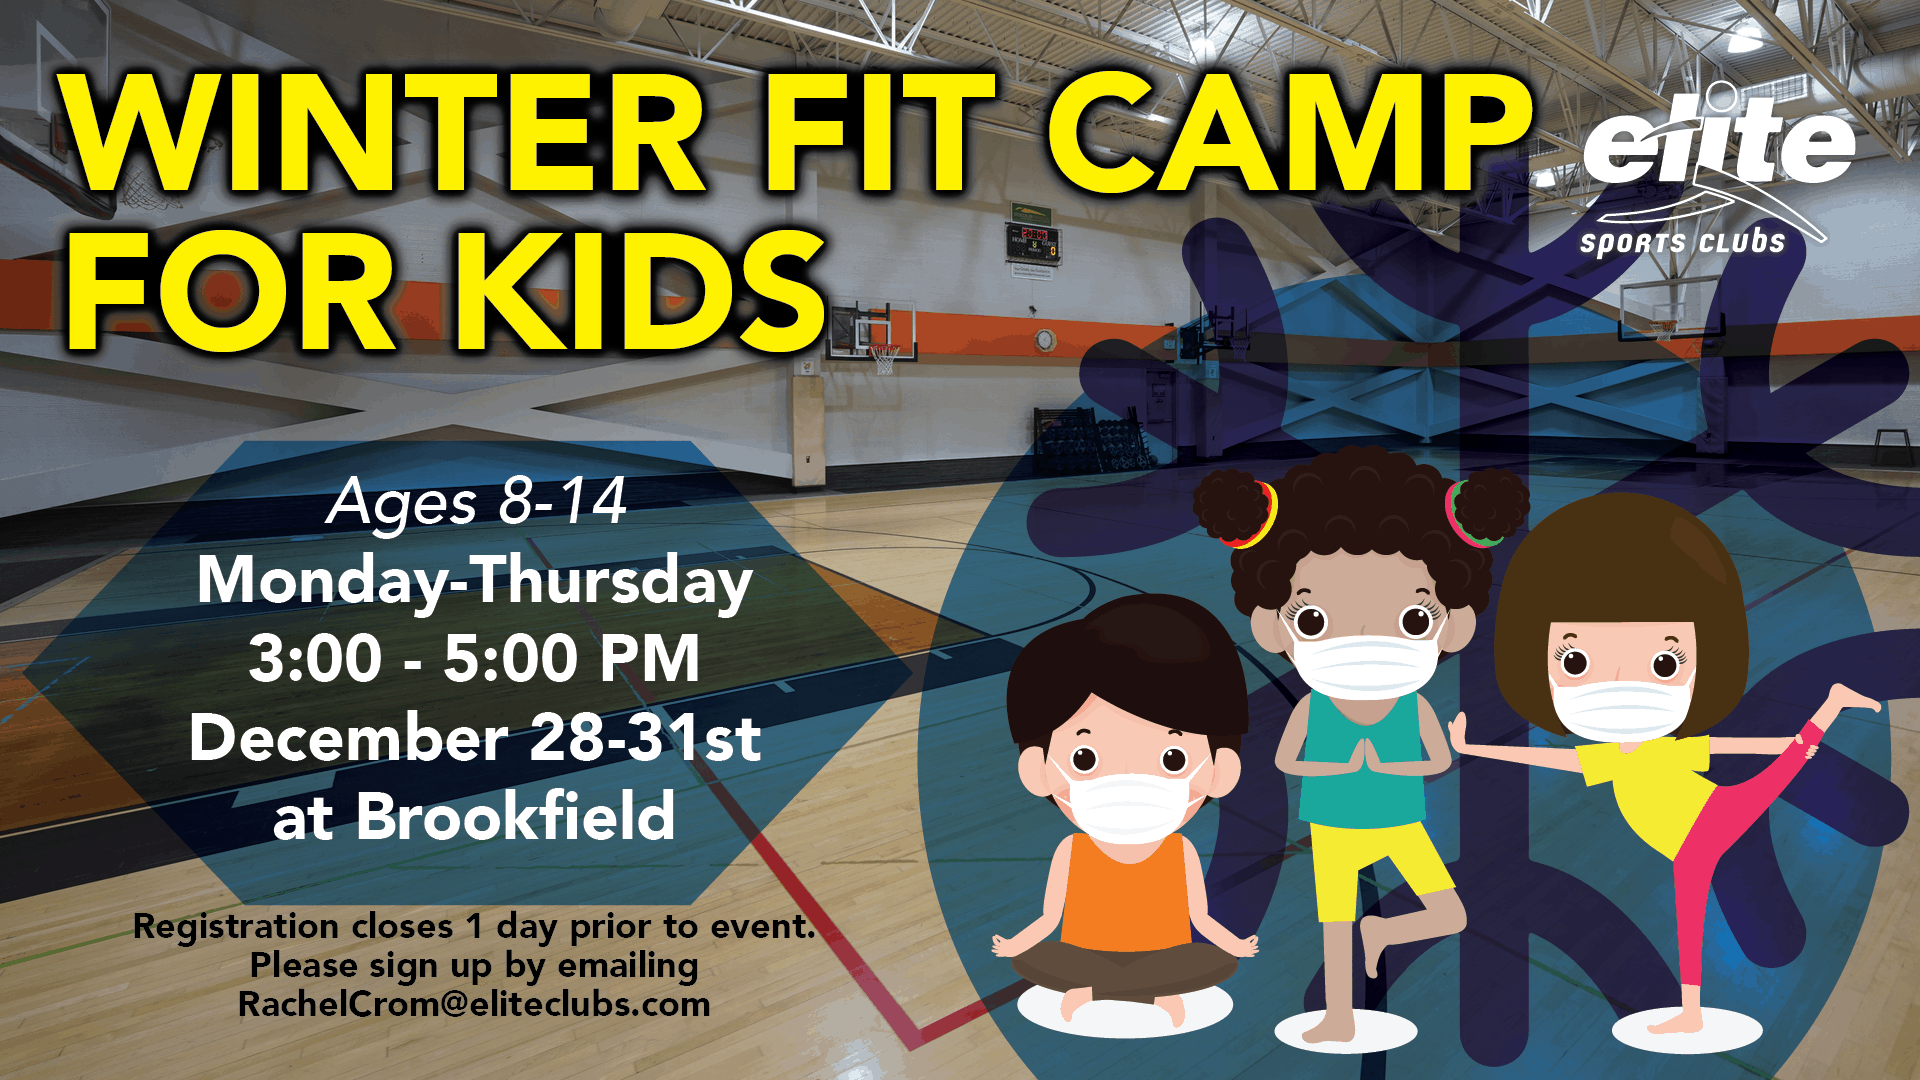 Winter Fit Camp for Kids - Elite Brookfield - December 2020